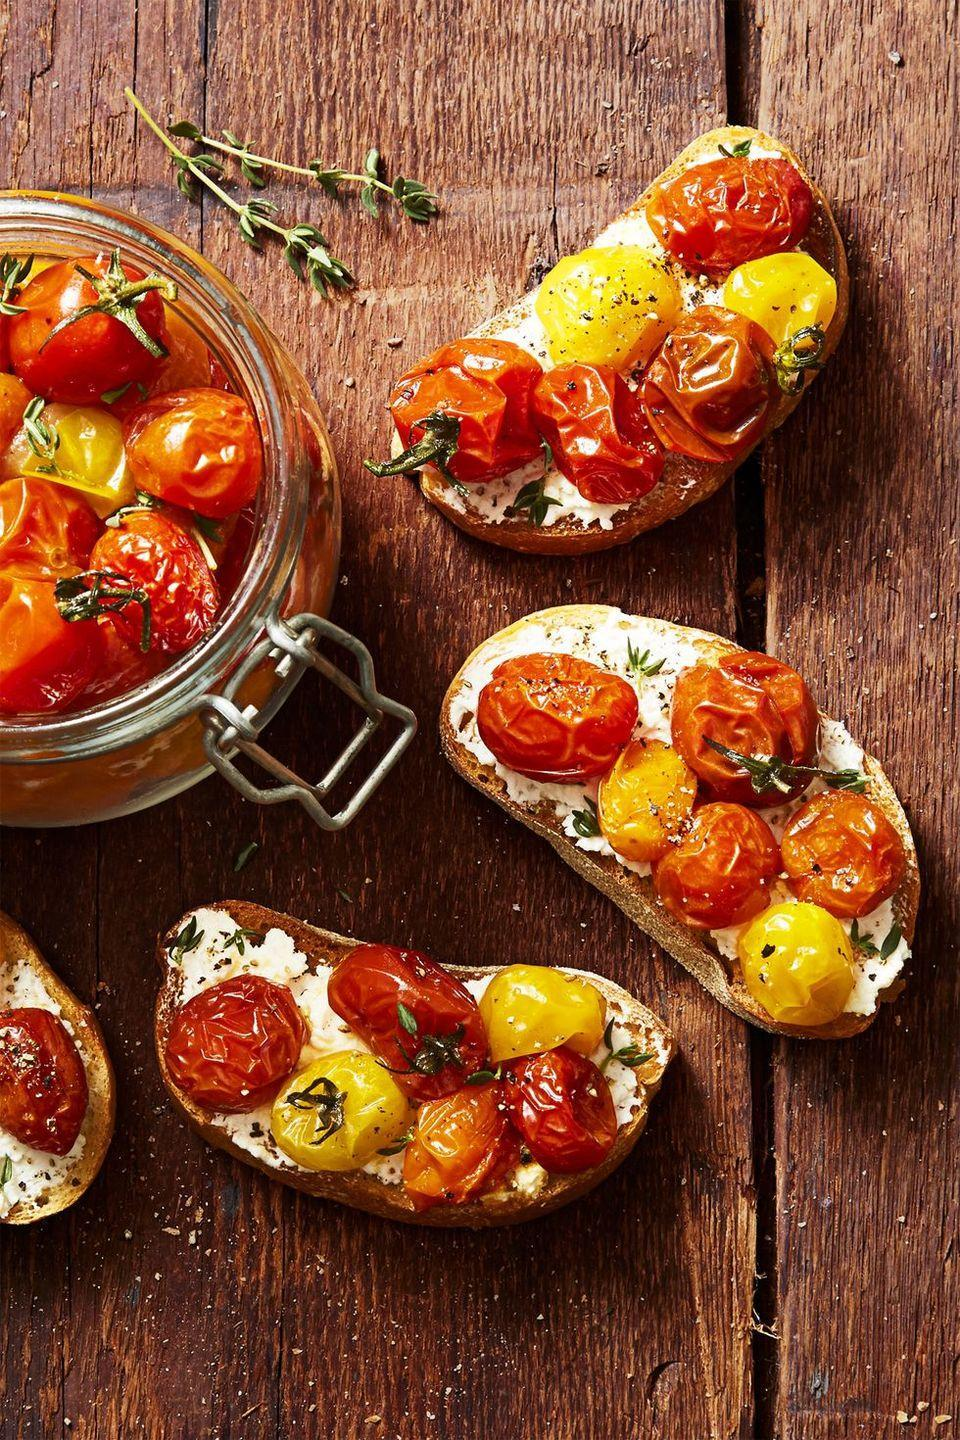 """<p>Add a spoonful of this four-ingredient confit onto crusty bread slices for a tasty bruschetta. </p><p><em><a href=""""https://www.goodhousekeeping.com/food-recipes/a45216/cherry-tomato-confit-recipe/"""" rel=""""nofollow noopener"""" target=""""_blank"""" data-ylk=""""slk:Get the recipe for Cherry Tomato Confit »"""" class=""""link rapid-noclick-resp"""">Get the recipe for Cherry Tomato Confit »</a></em></p>"""